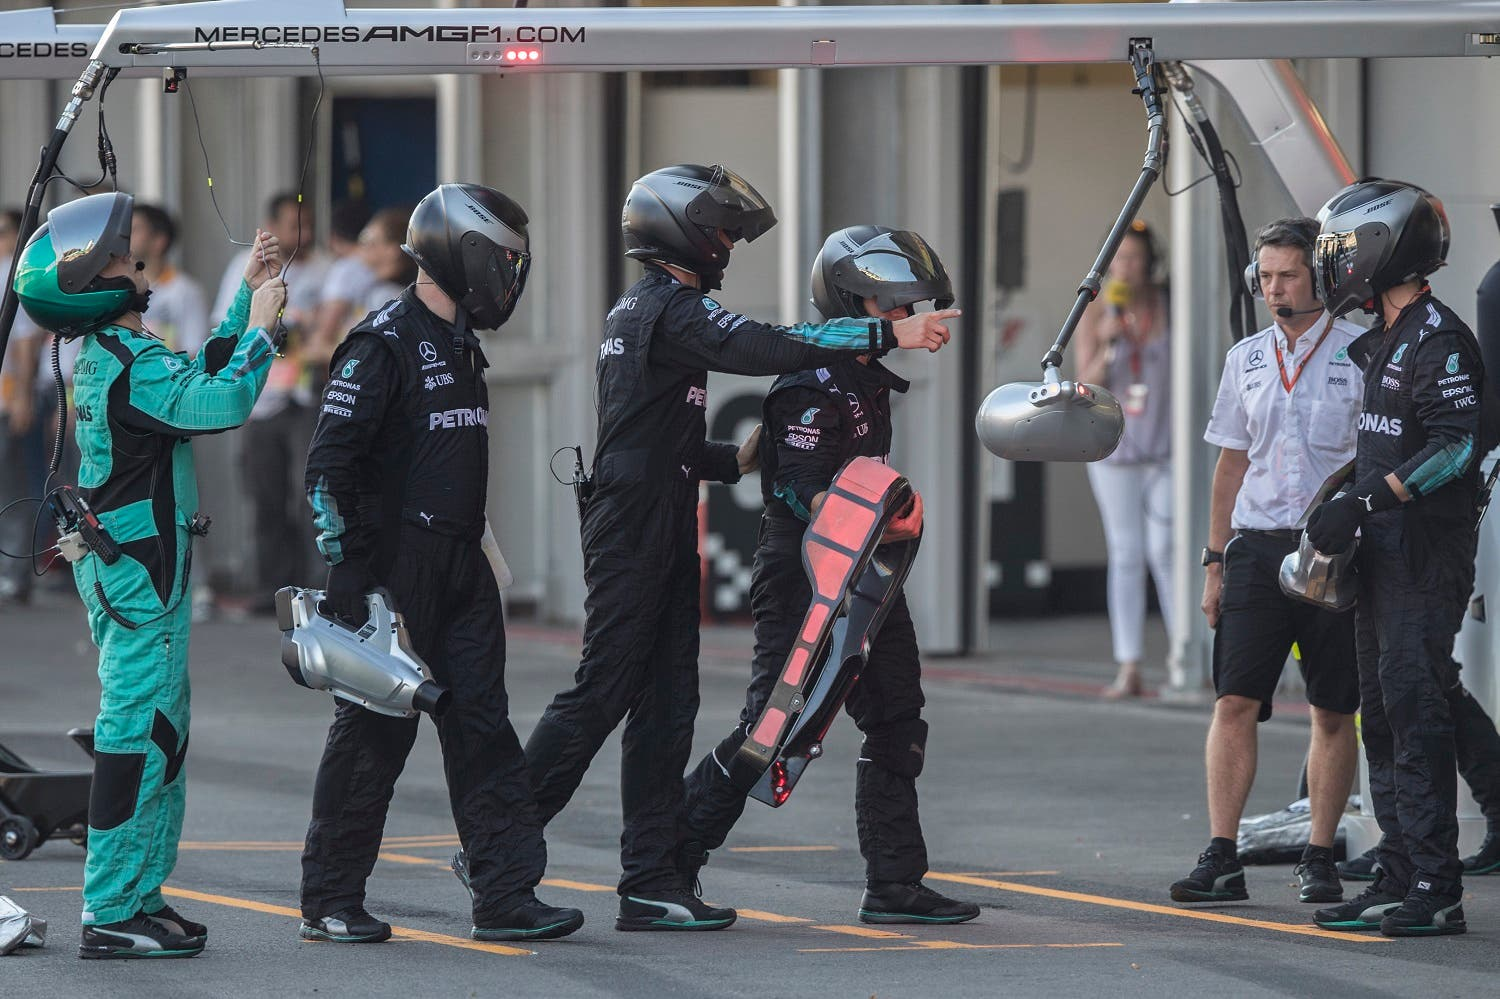 Mechanics carry the head rest of the car of Mercedes driver Lewis Hamilton of Britain in a pit stop at the Formula One Azerbaijan Grand Prix in Baku, on June 25, 2017. (AP)